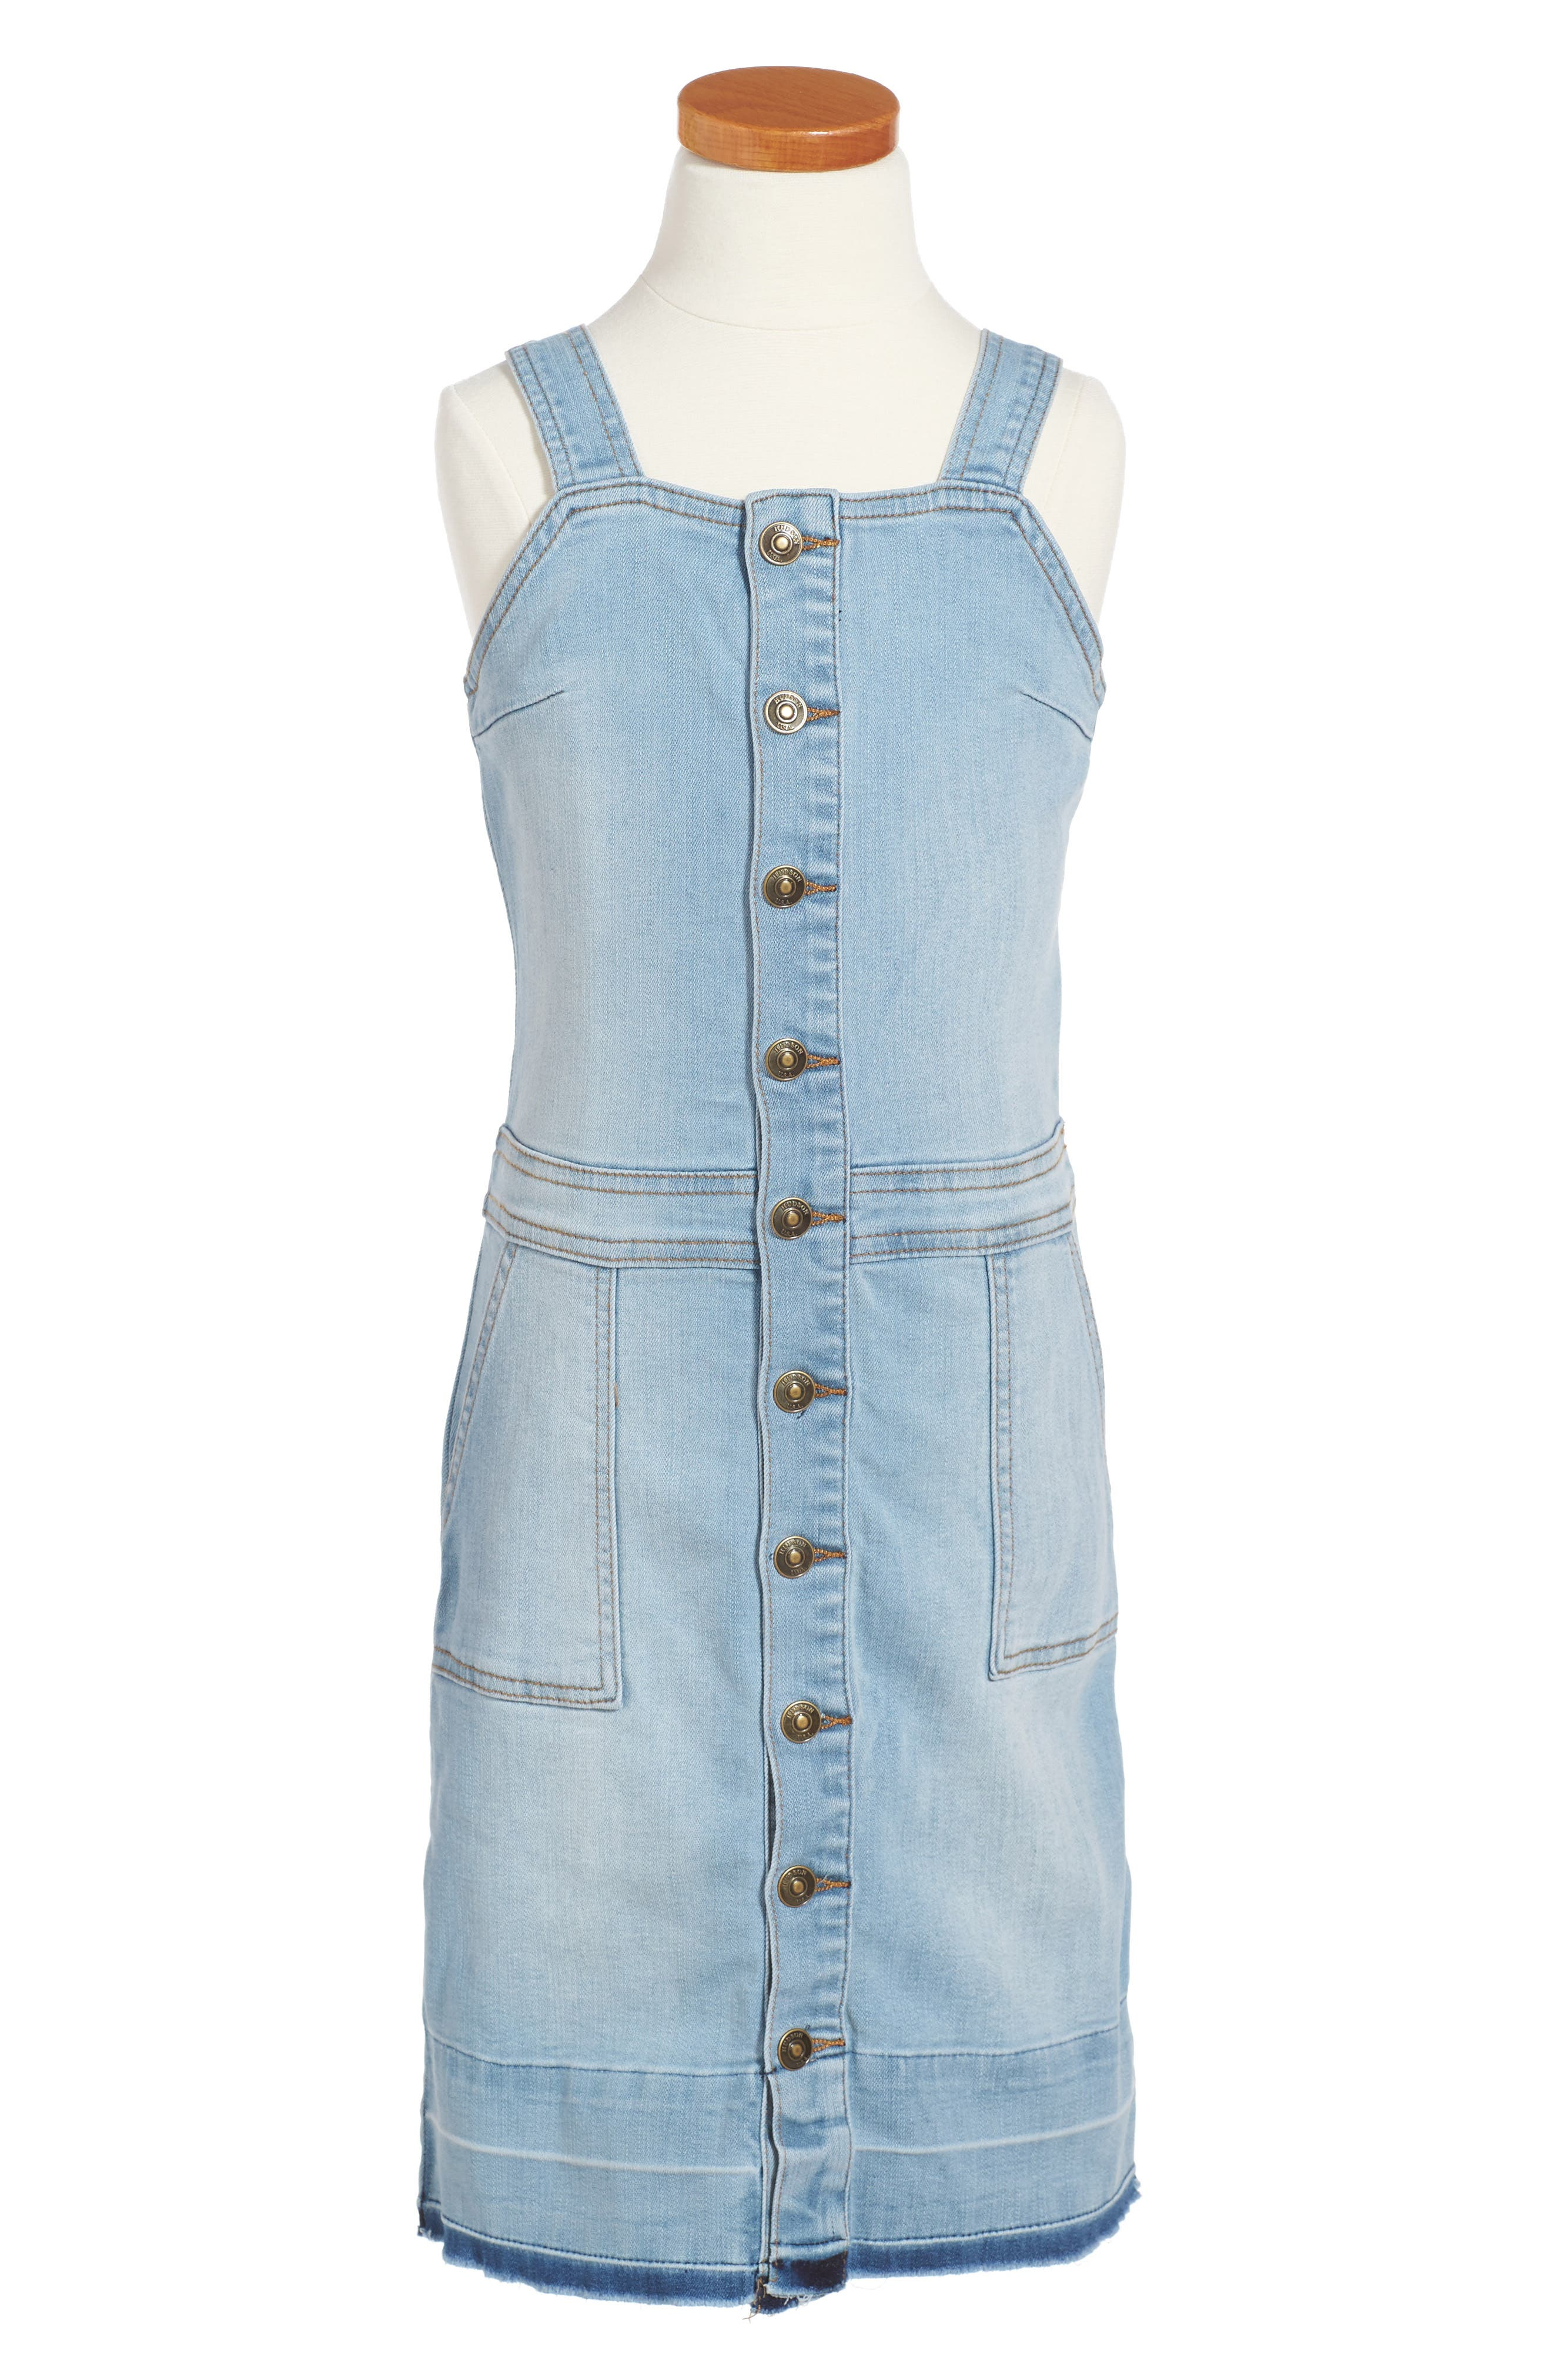 Main Image - Hudson Kids Kelly Denim Overall Dress (Big Girls)